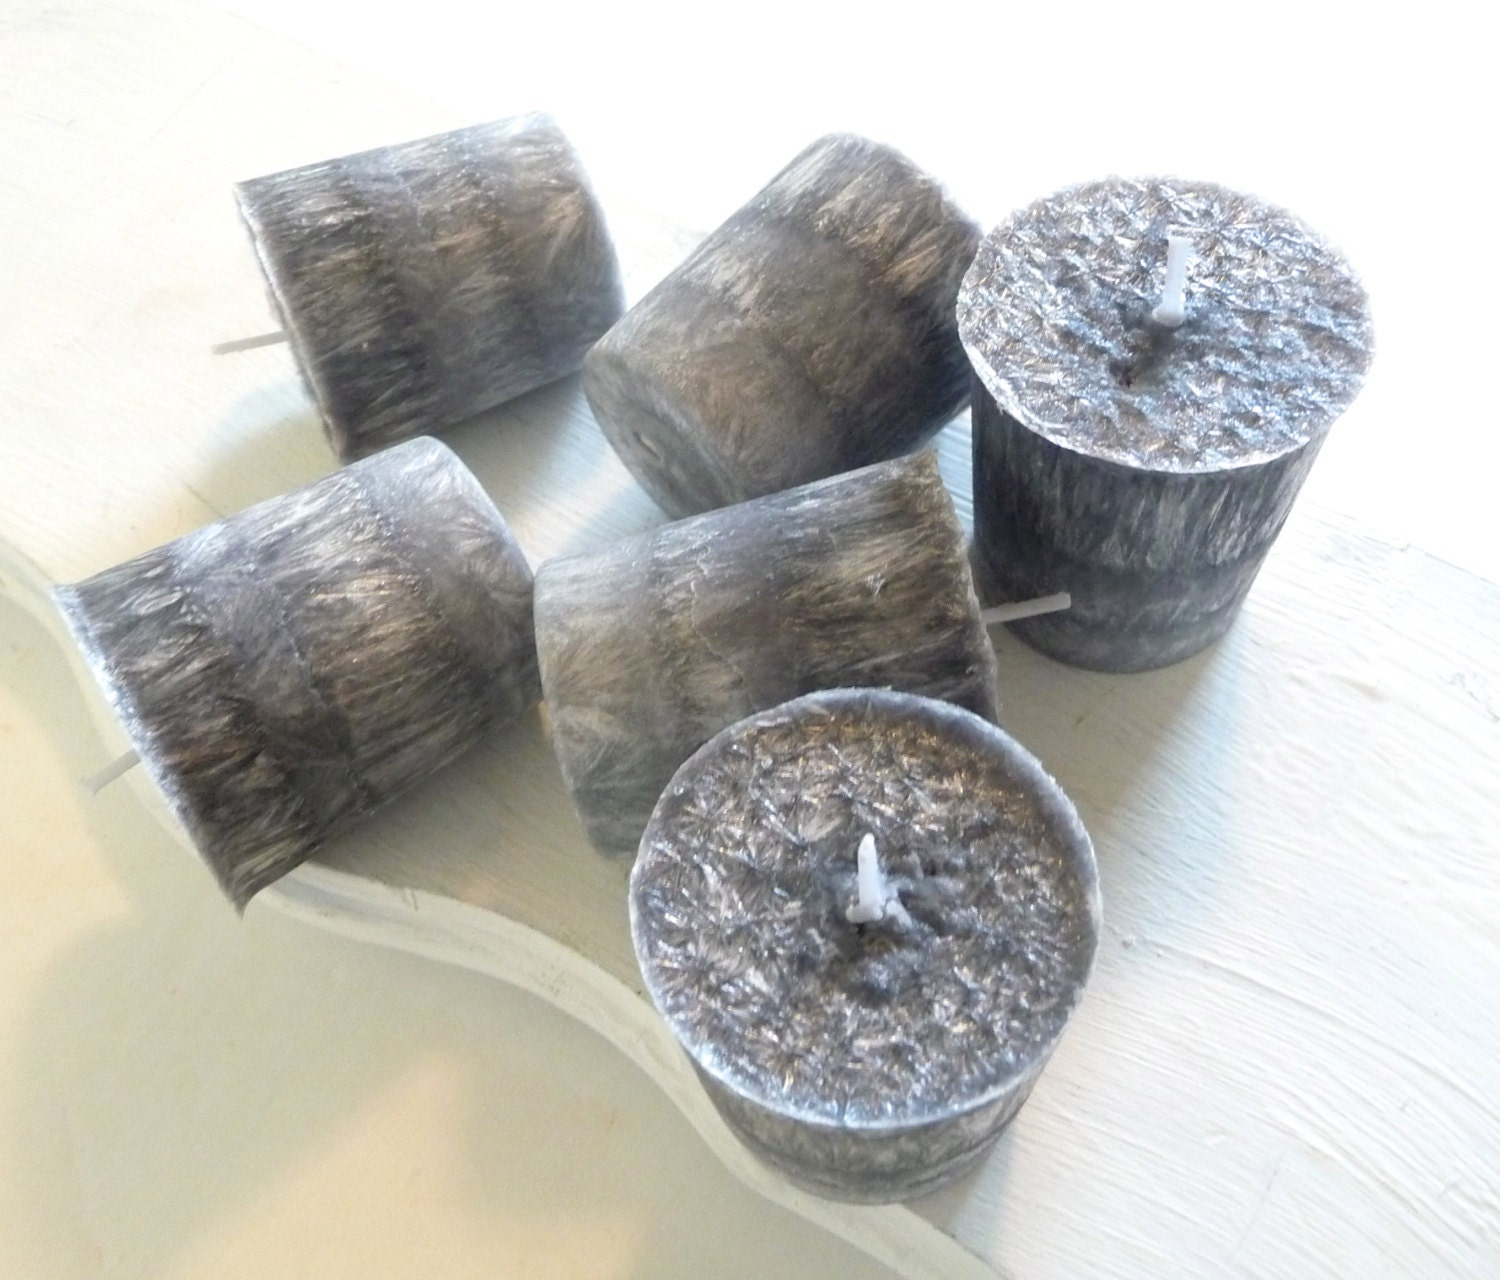 6 Madagascar Spice Palm Wax Votive Candles, Black and Gray Candles - Mylana